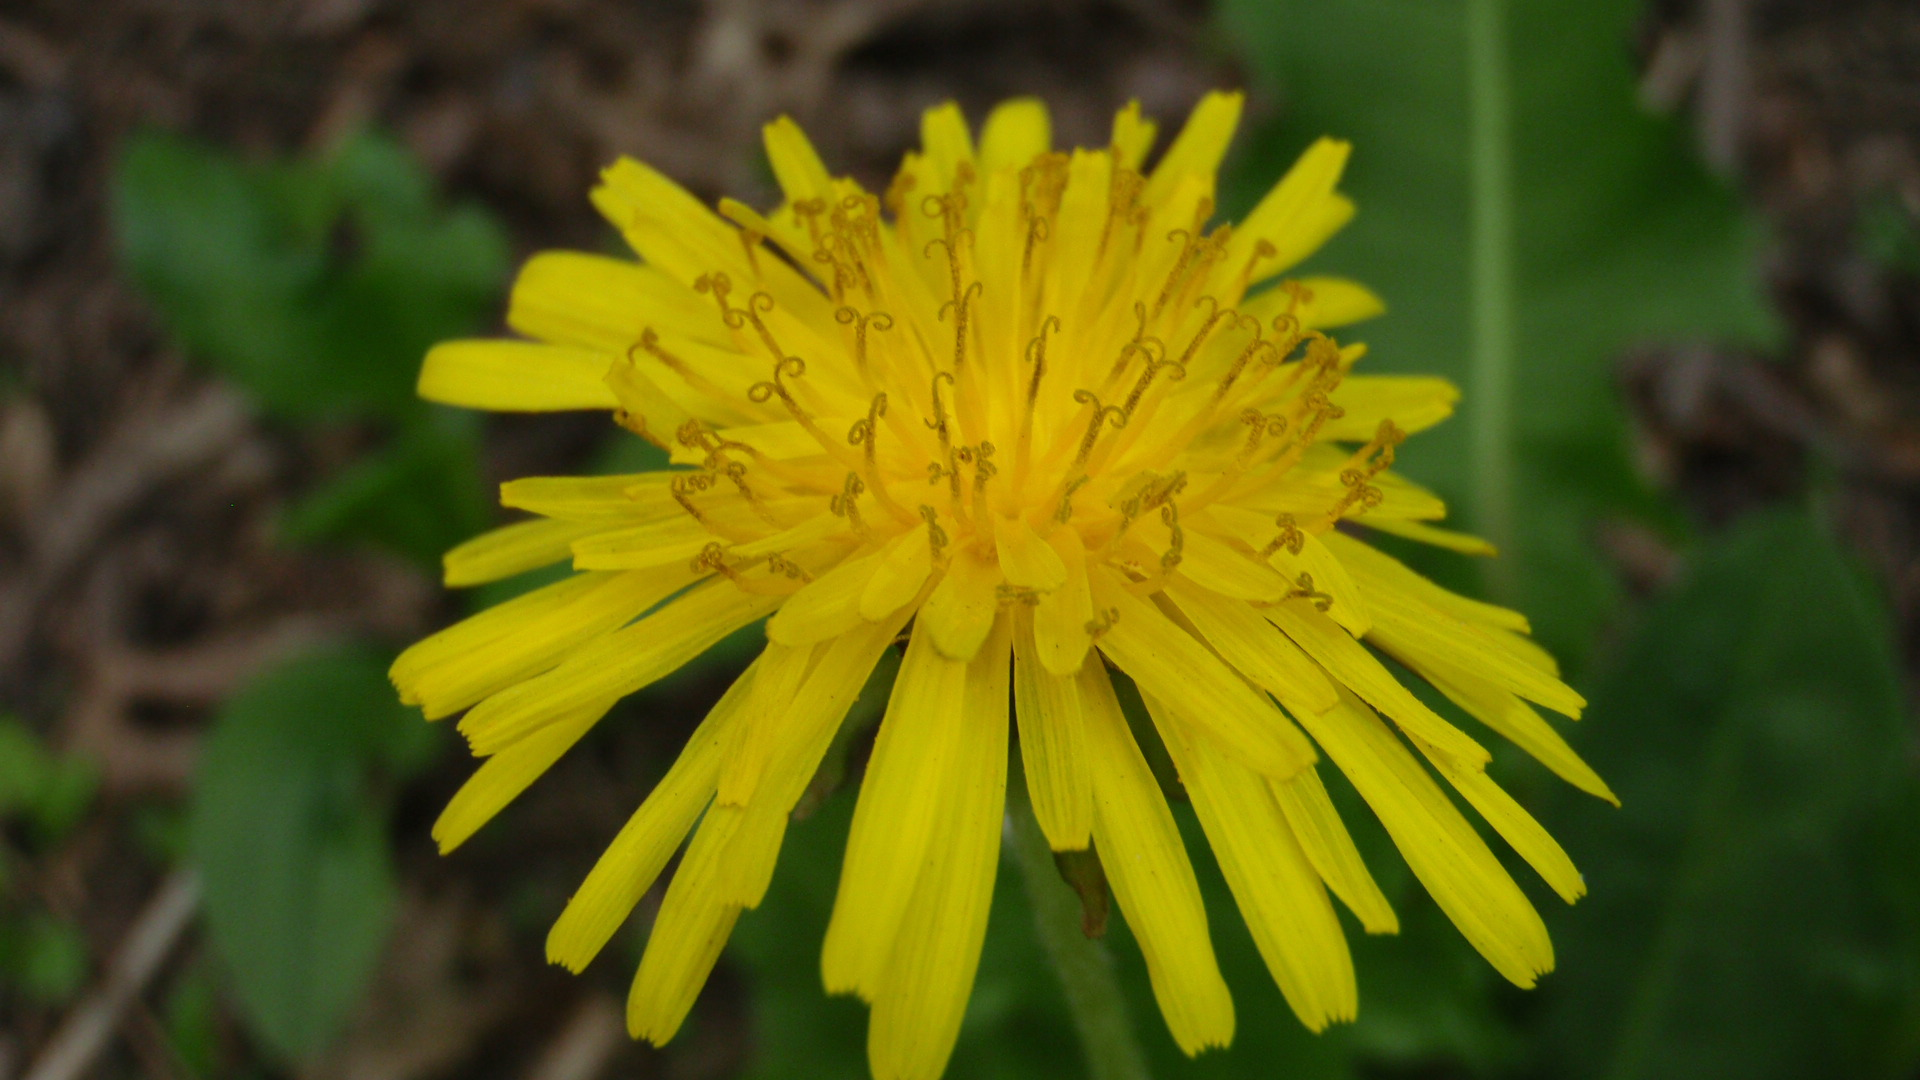 Dandelion - some things never go out of style